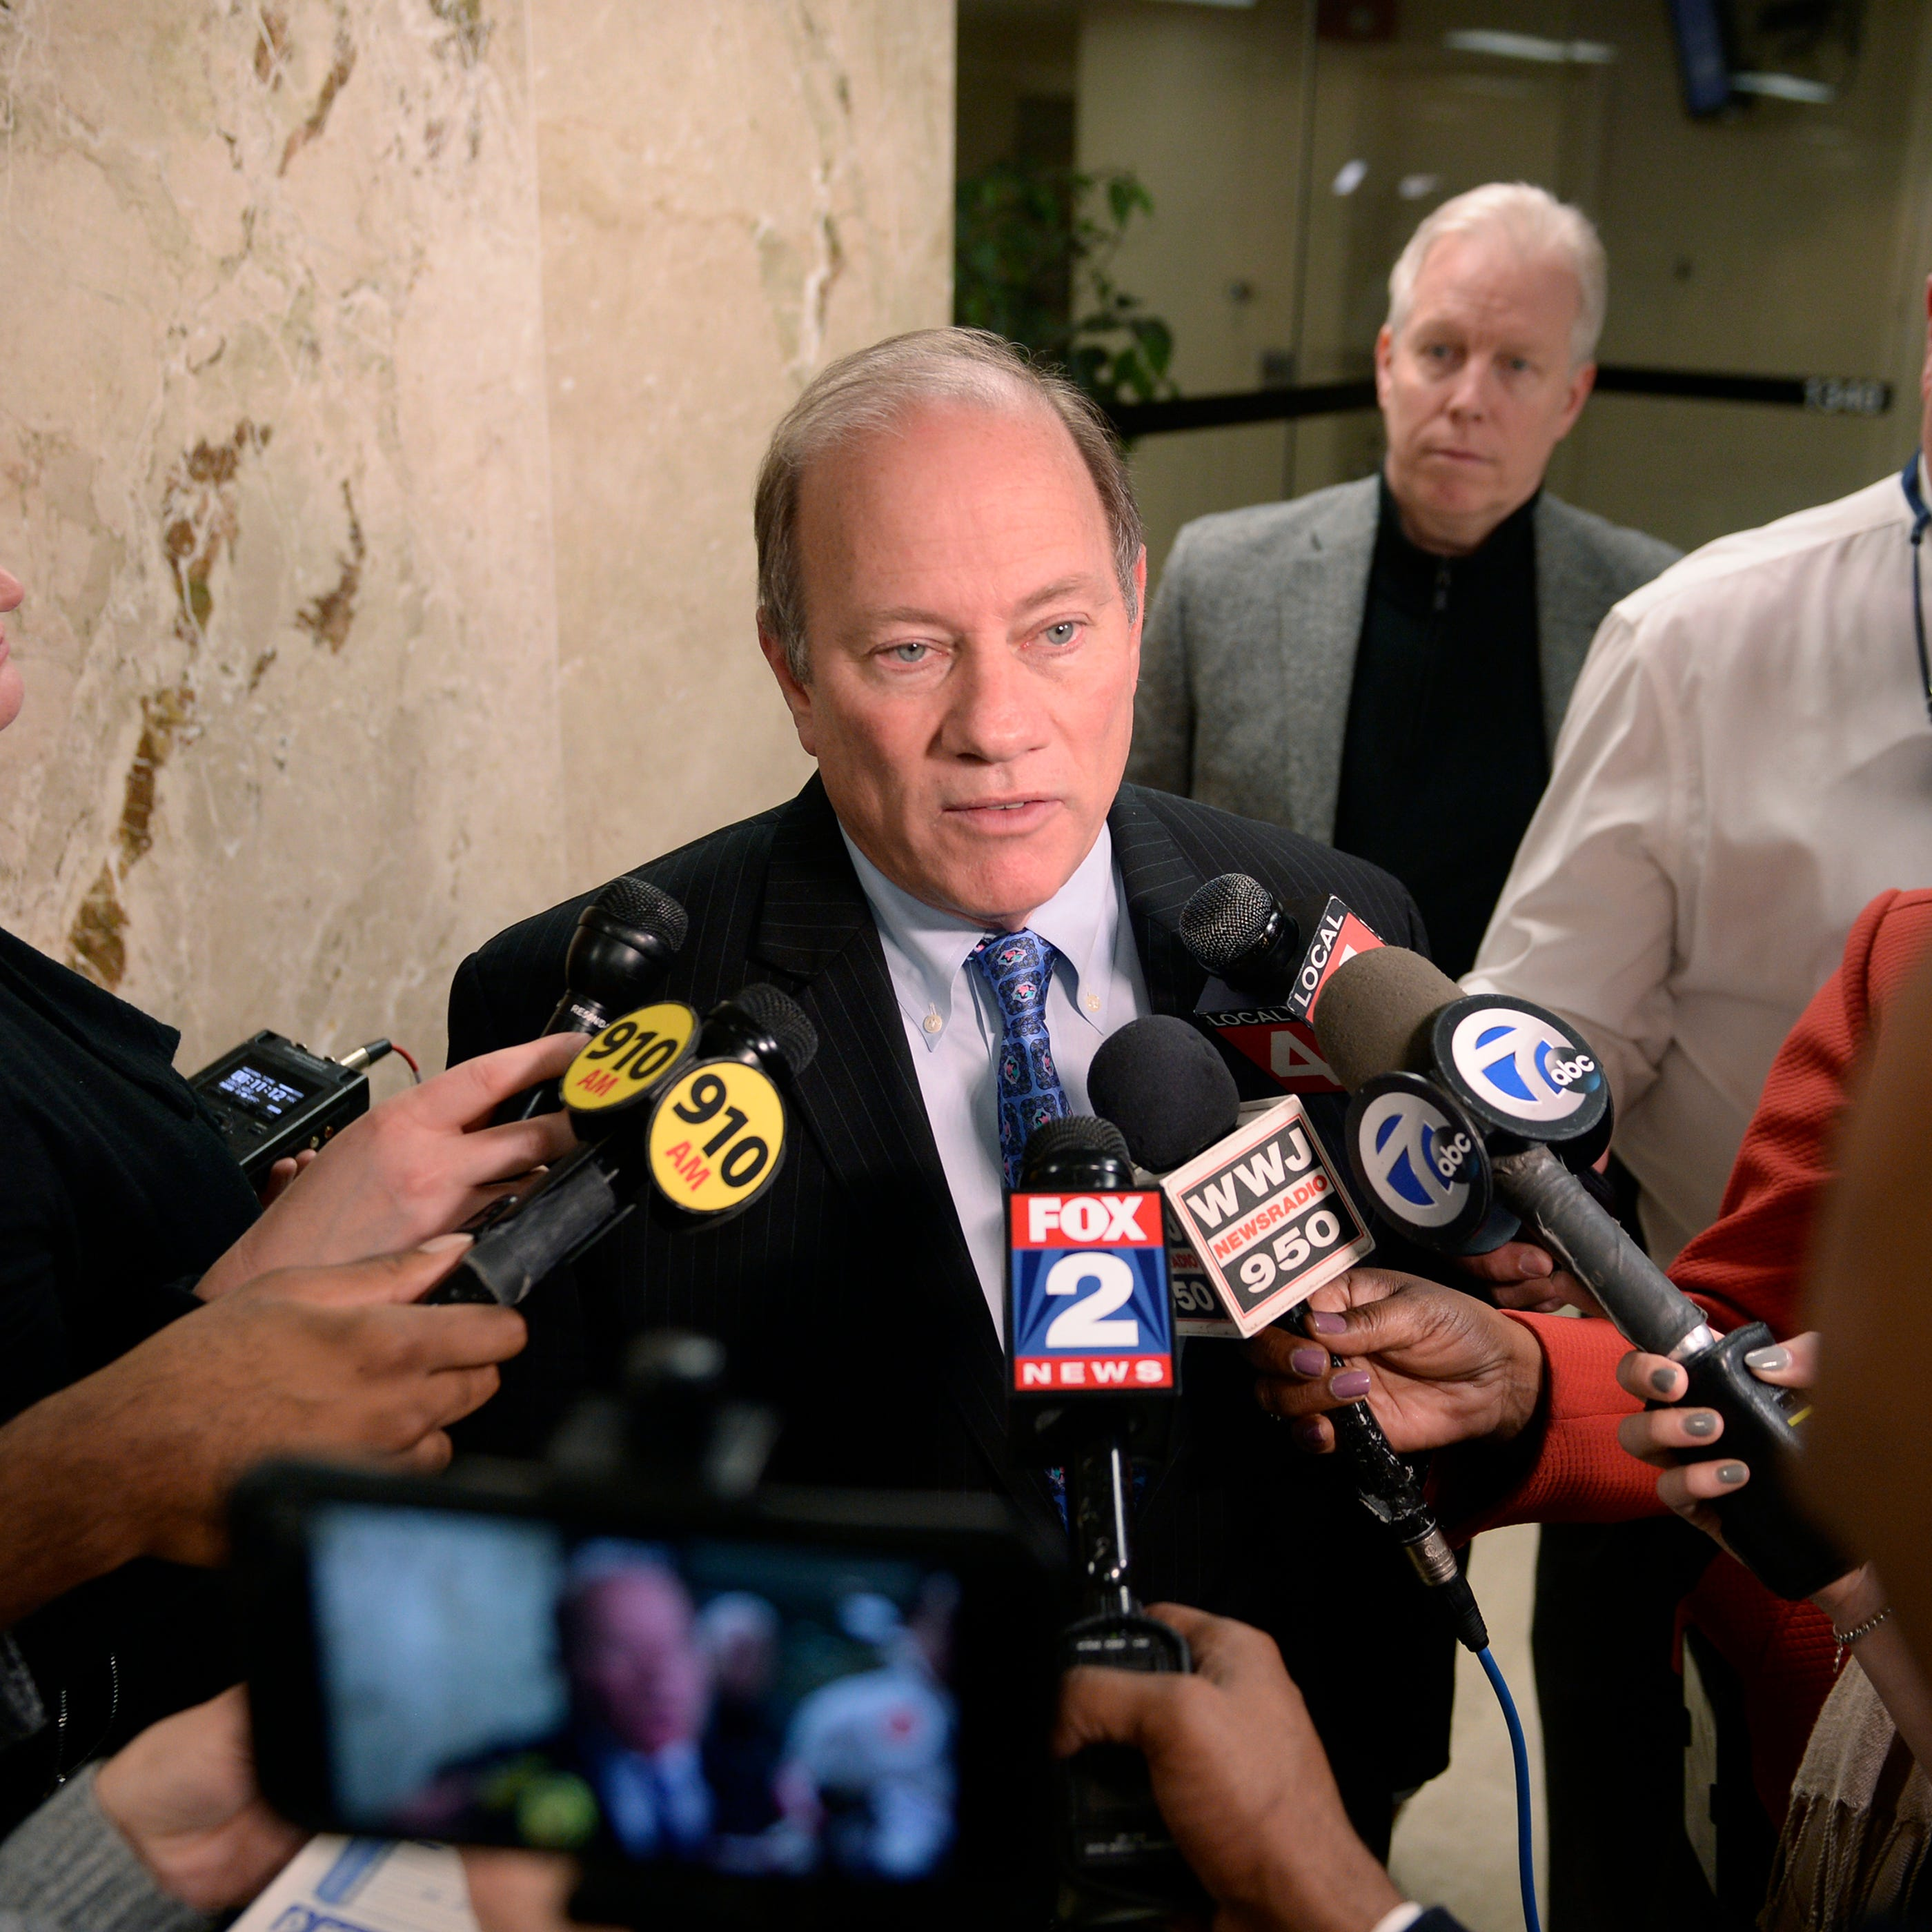 Detroit inspector general probes claims mayor, city abused power in support of birth program